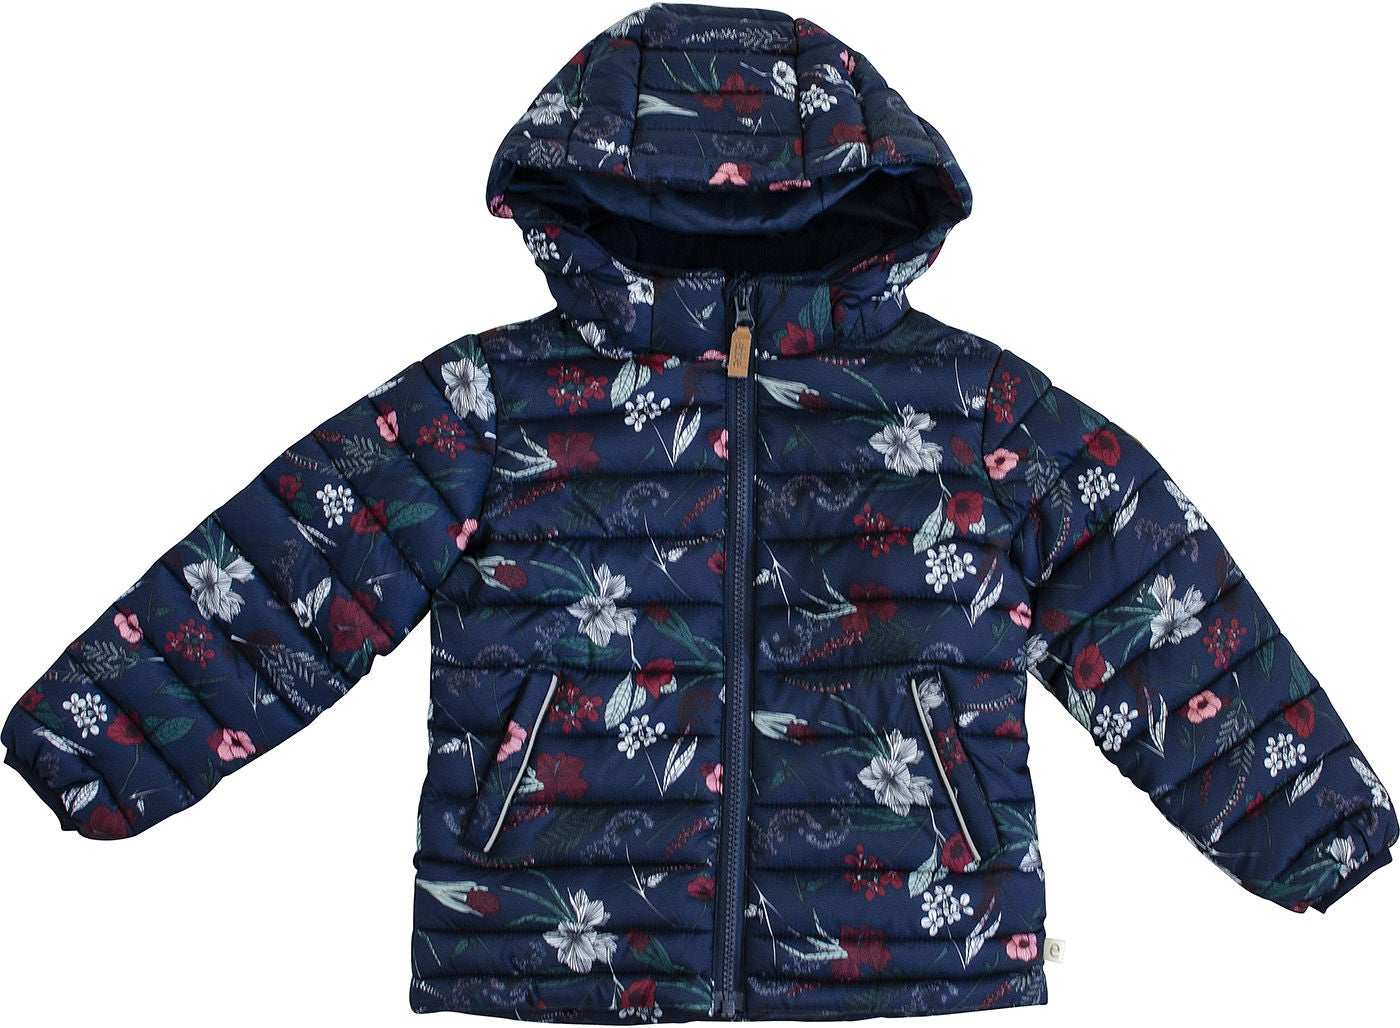 Ebbe Dacia Quilted Jacka, Flower Print 134